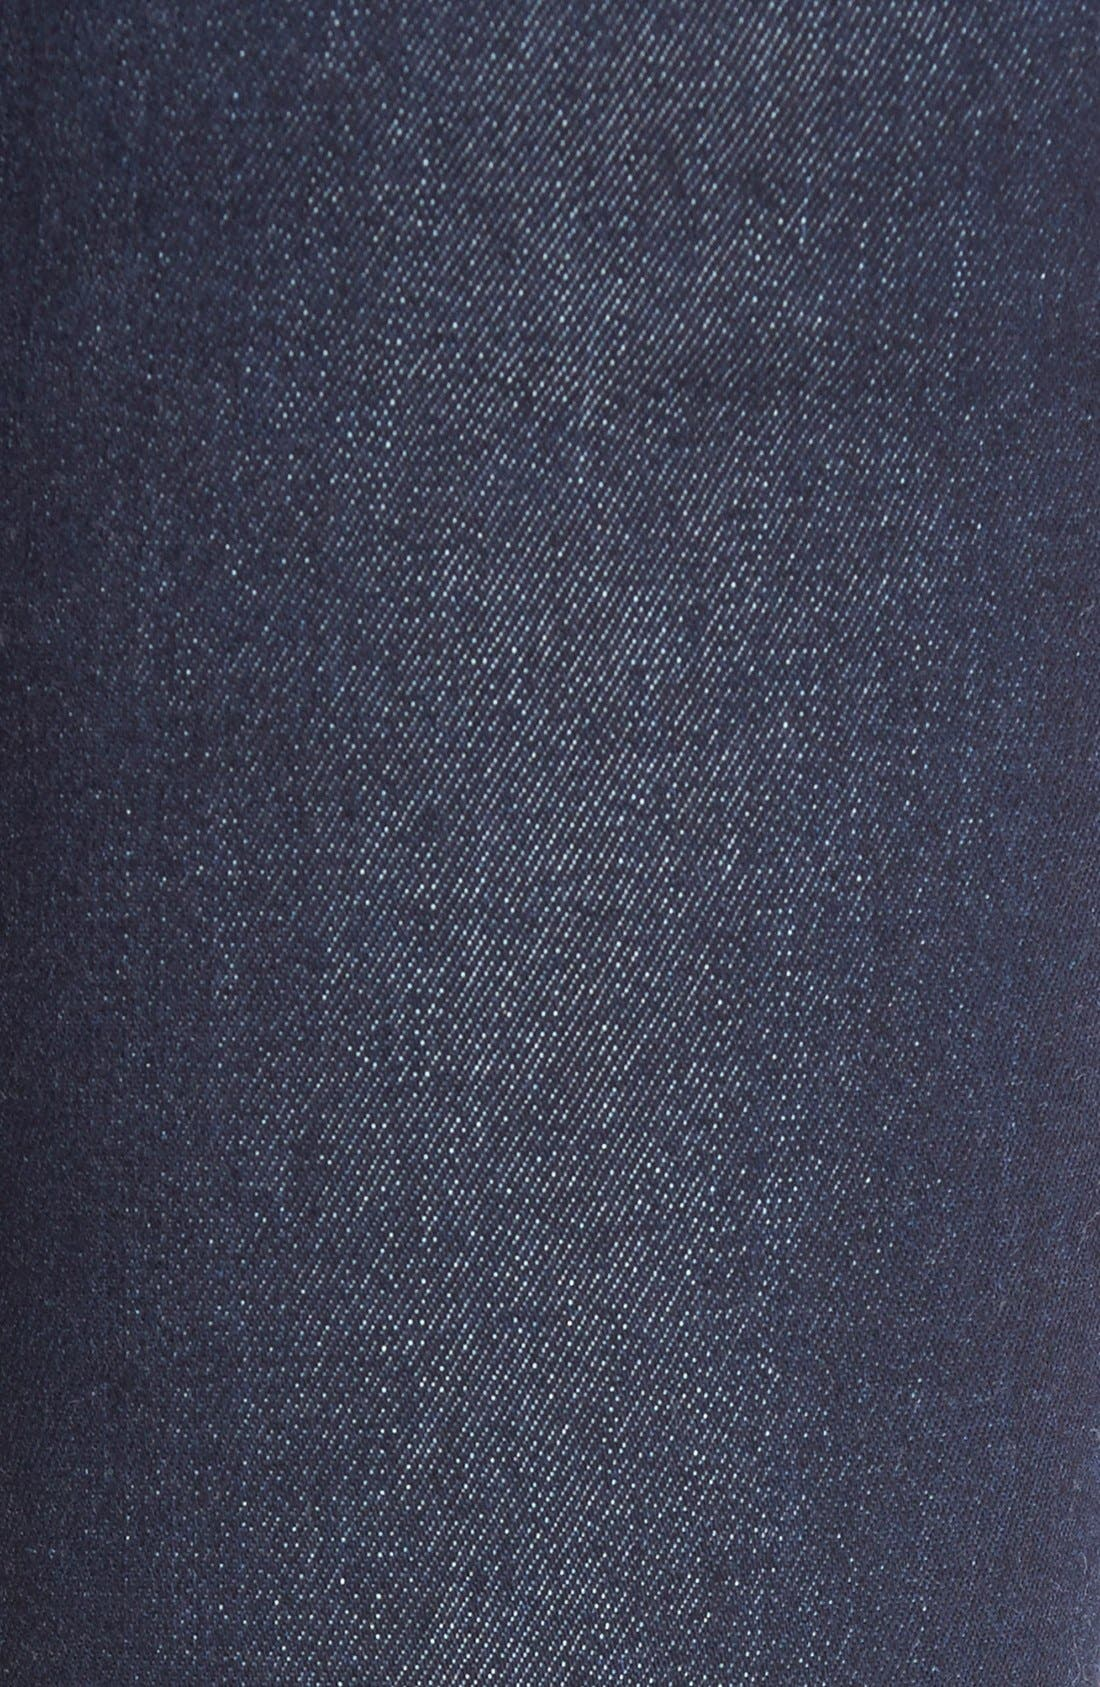 'Fleetwood' High Rise Flare Jeans,                             Alternate thumbnail 5, color,                             OZONE RINSE